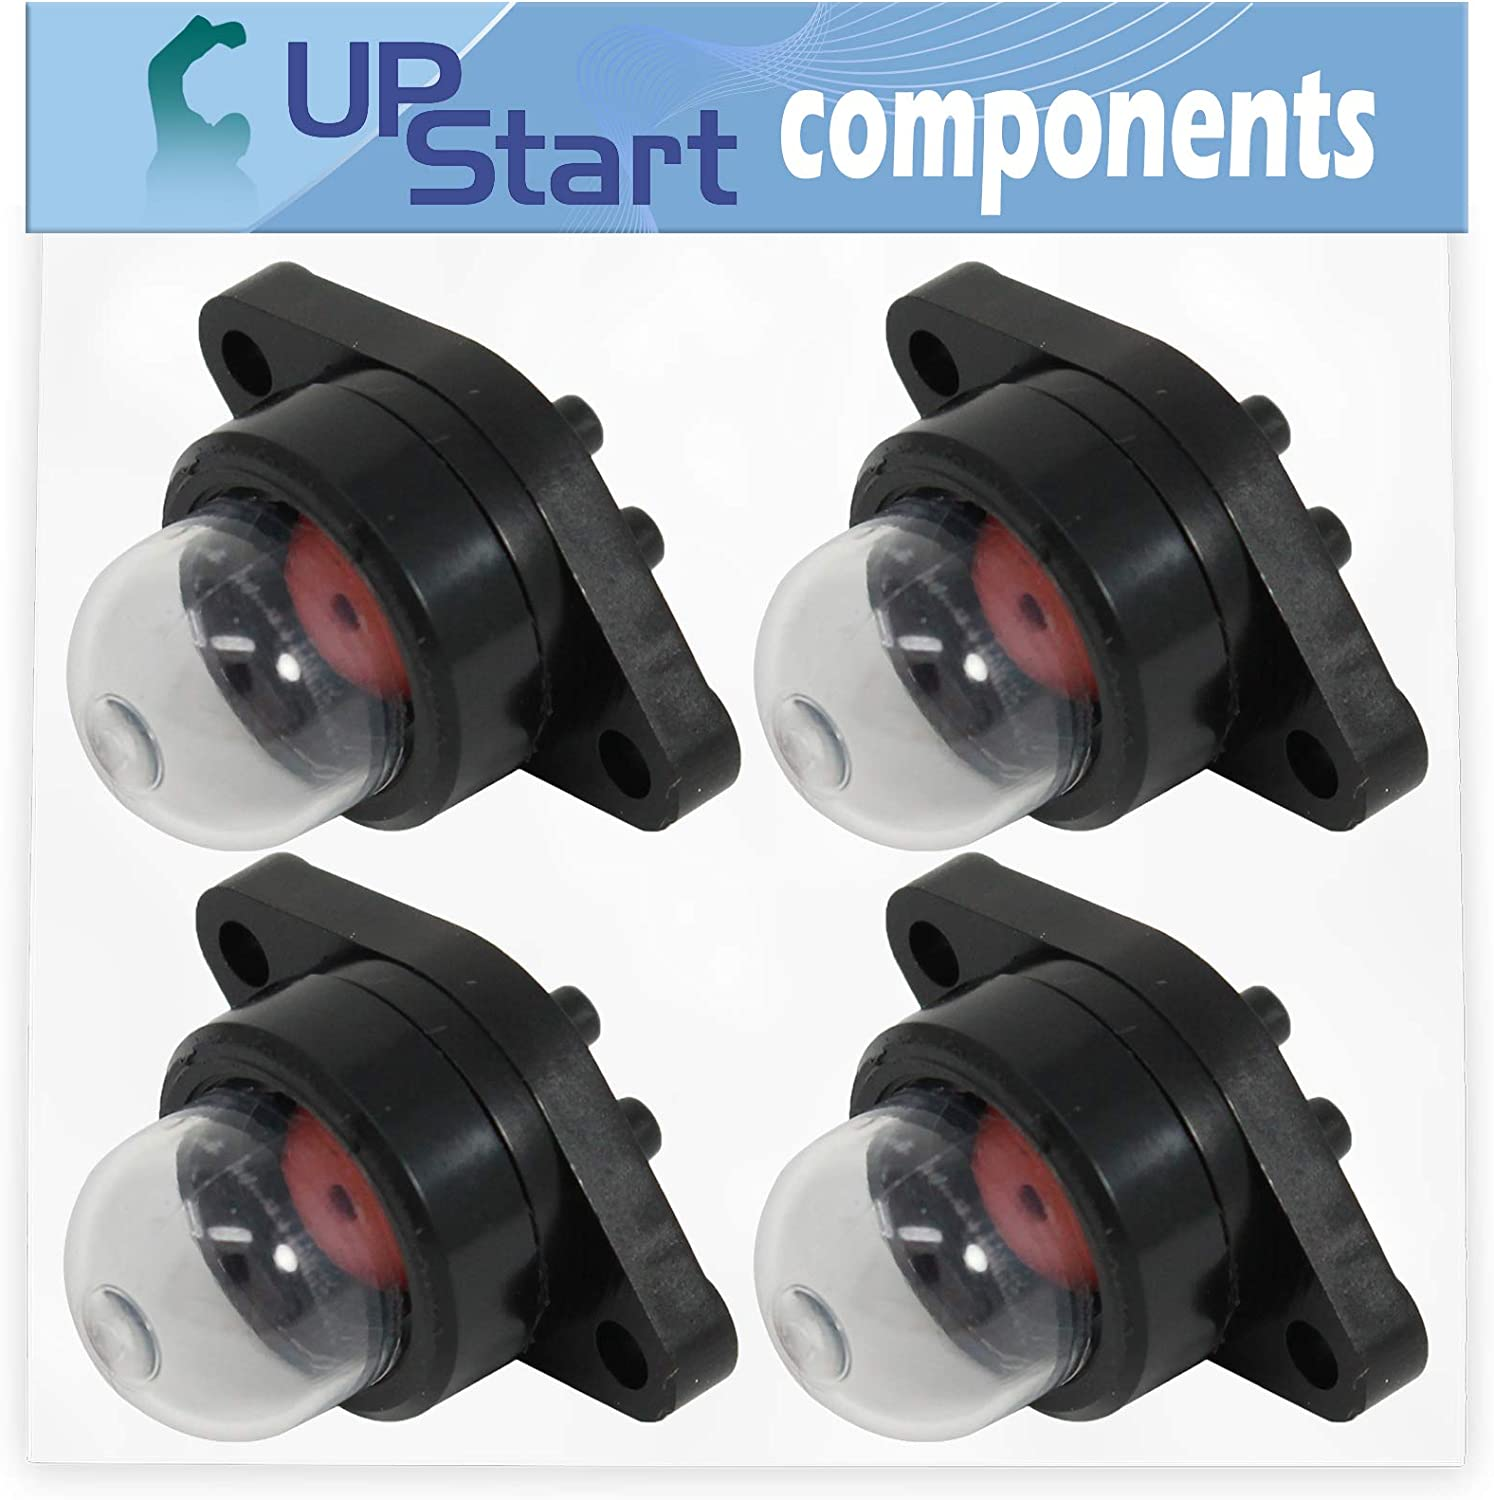 UpStart Components 4-Pack 530071835 Primer Bulb Replacement for Craftsman 358352181 Chainsaw Compatible with 188-513-1 530047213 Purge Bulb